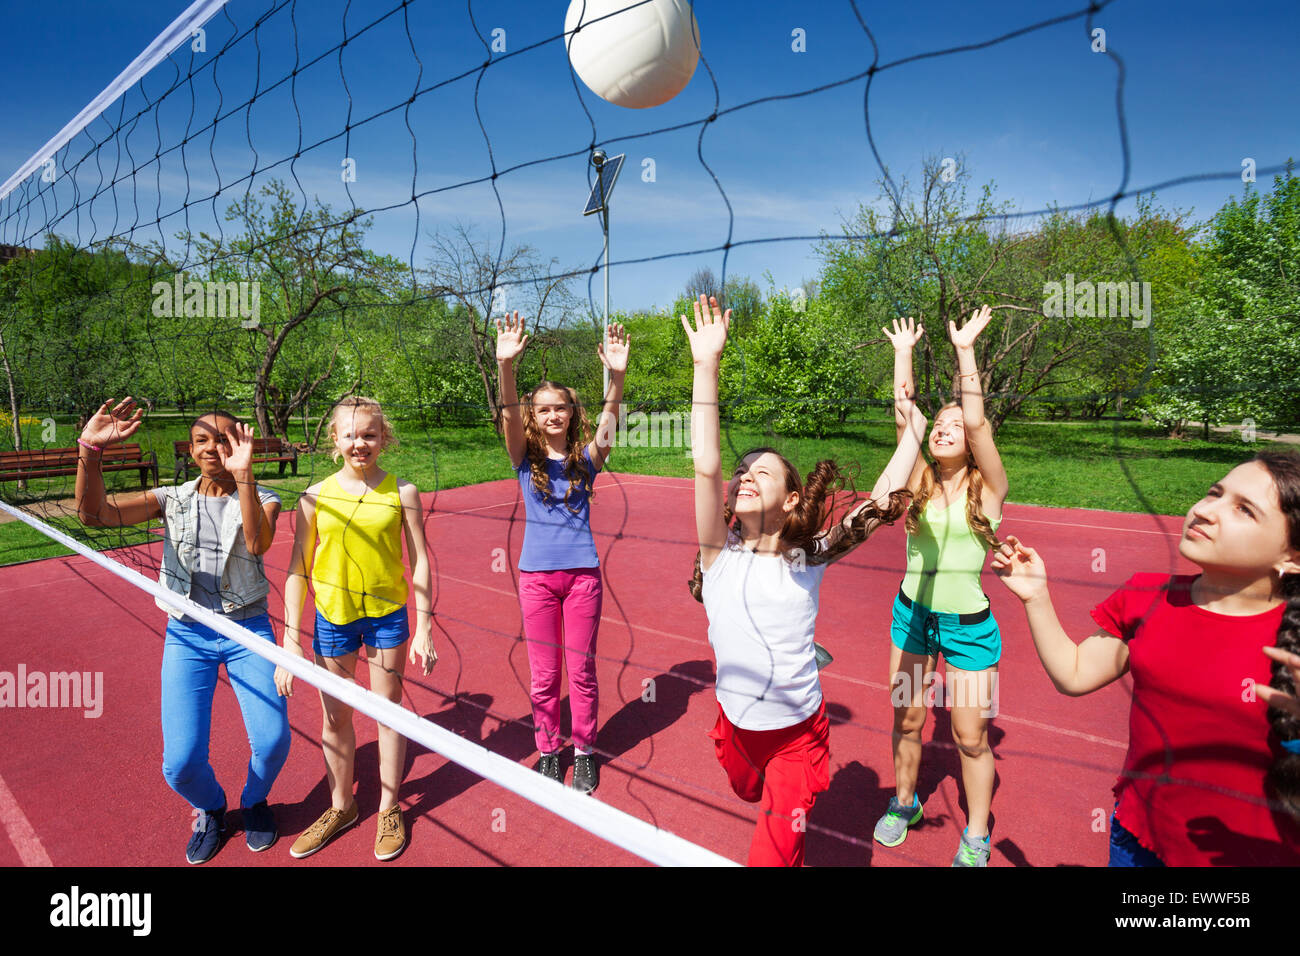 Jeu de volley-ball aux Jeux enfants adolescents Photo Stock